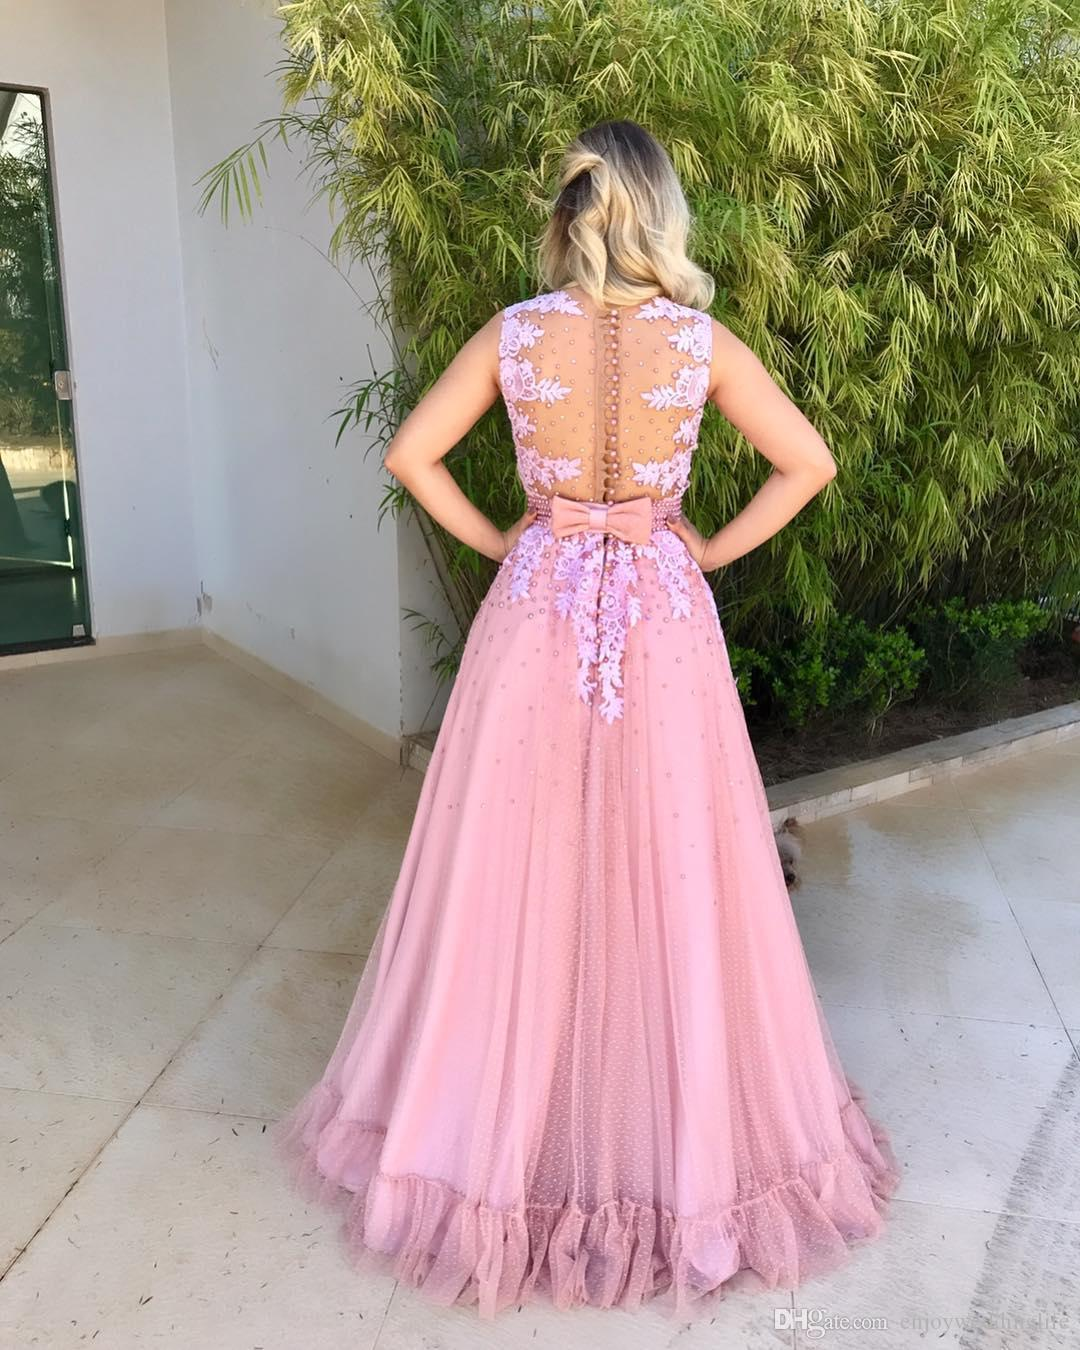 Vintage Pink Sleeveless A Line Tulle Prom Dresses Jewel Neck Lace Beading Illusion Back Evening Dresses Button Covered Special Wear